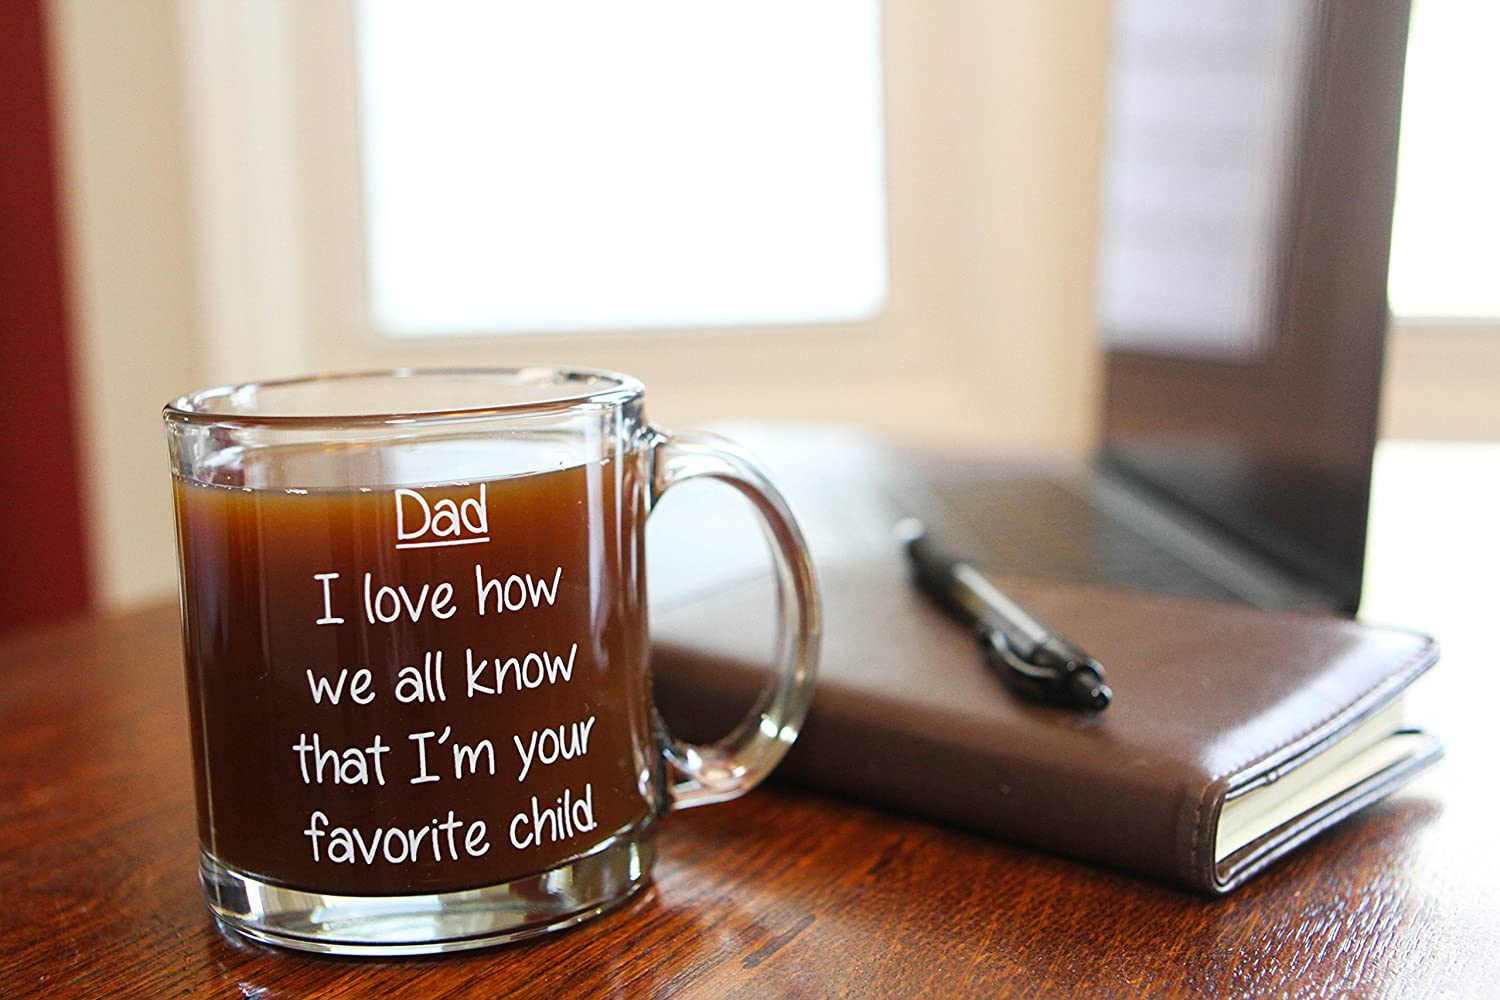 Best Dad Ever Mug Funny Novelty Gift Coffee Cup 13 Oz